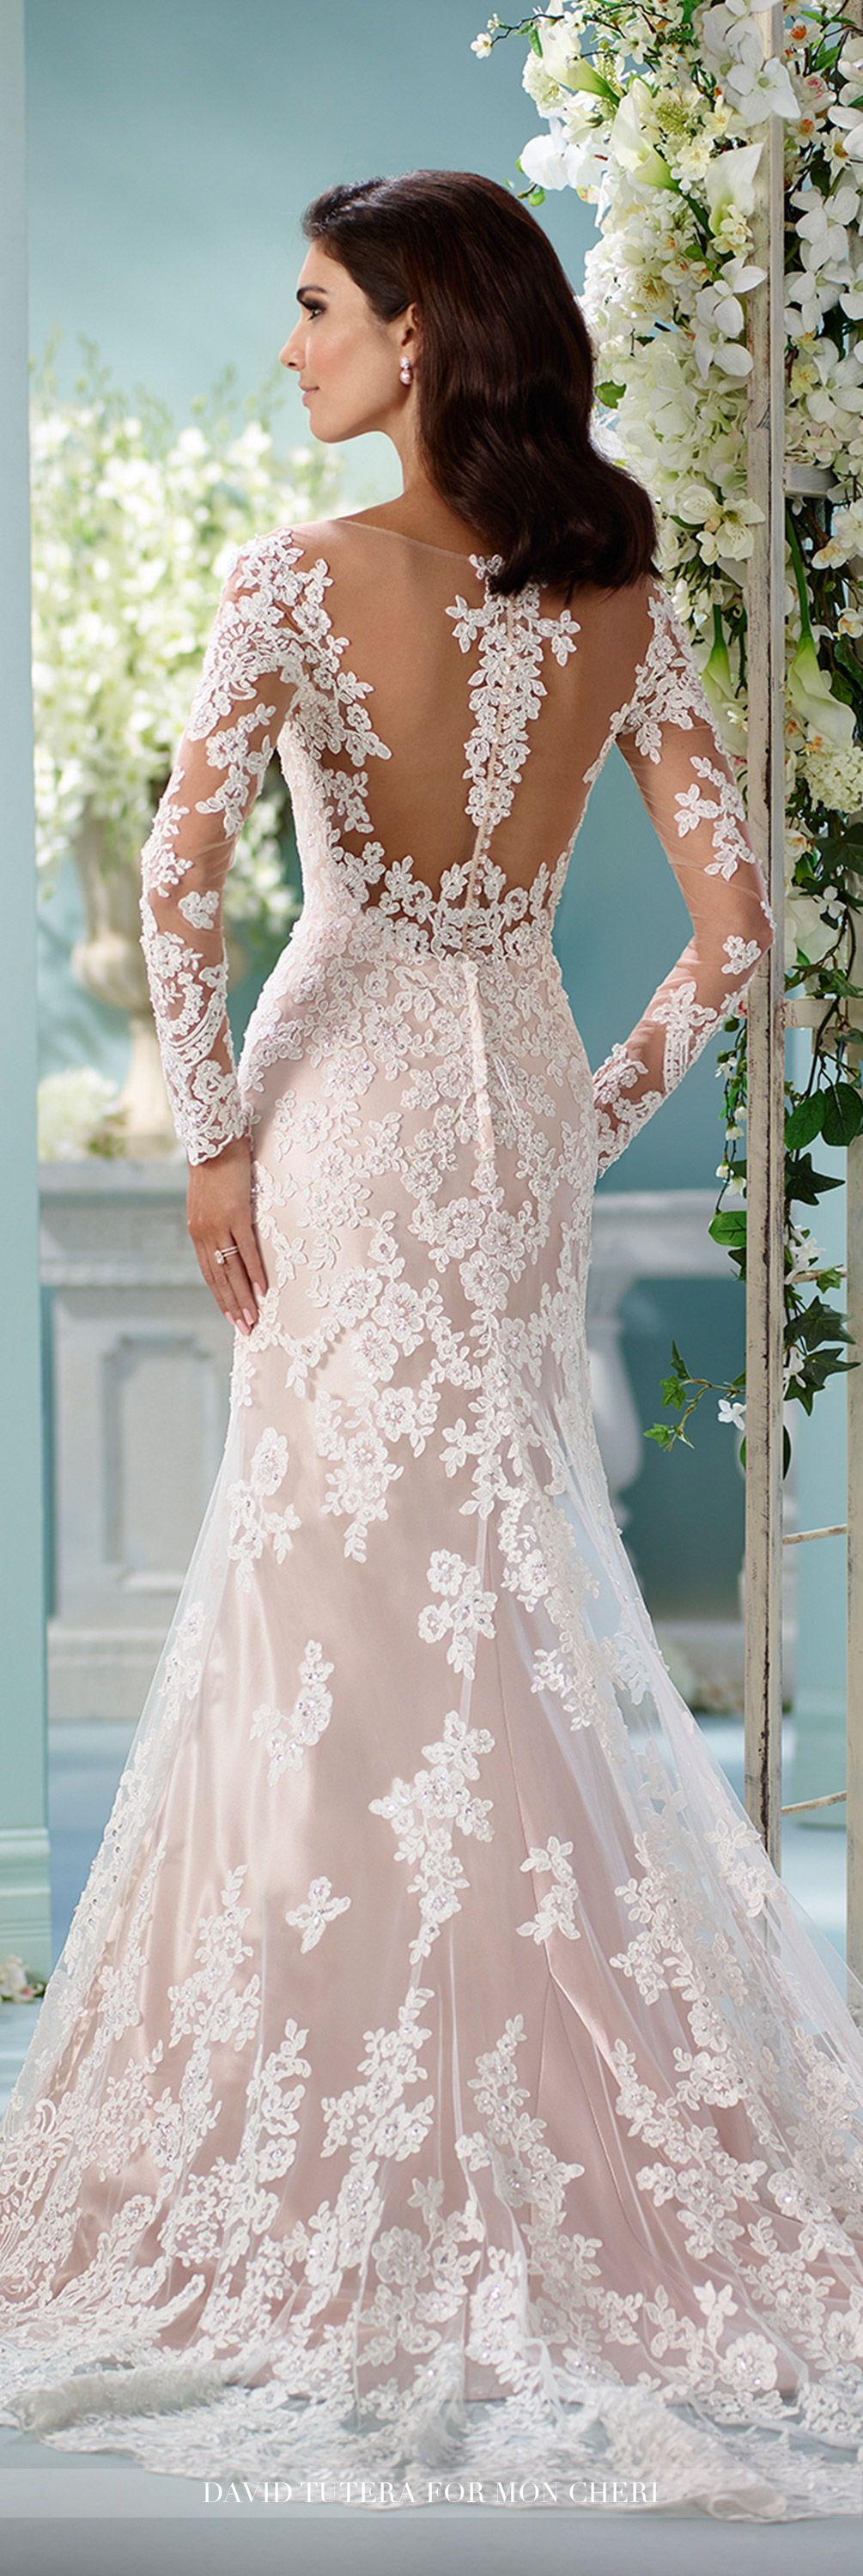 Lace long sleeved fit u flare wedding dress maisie david